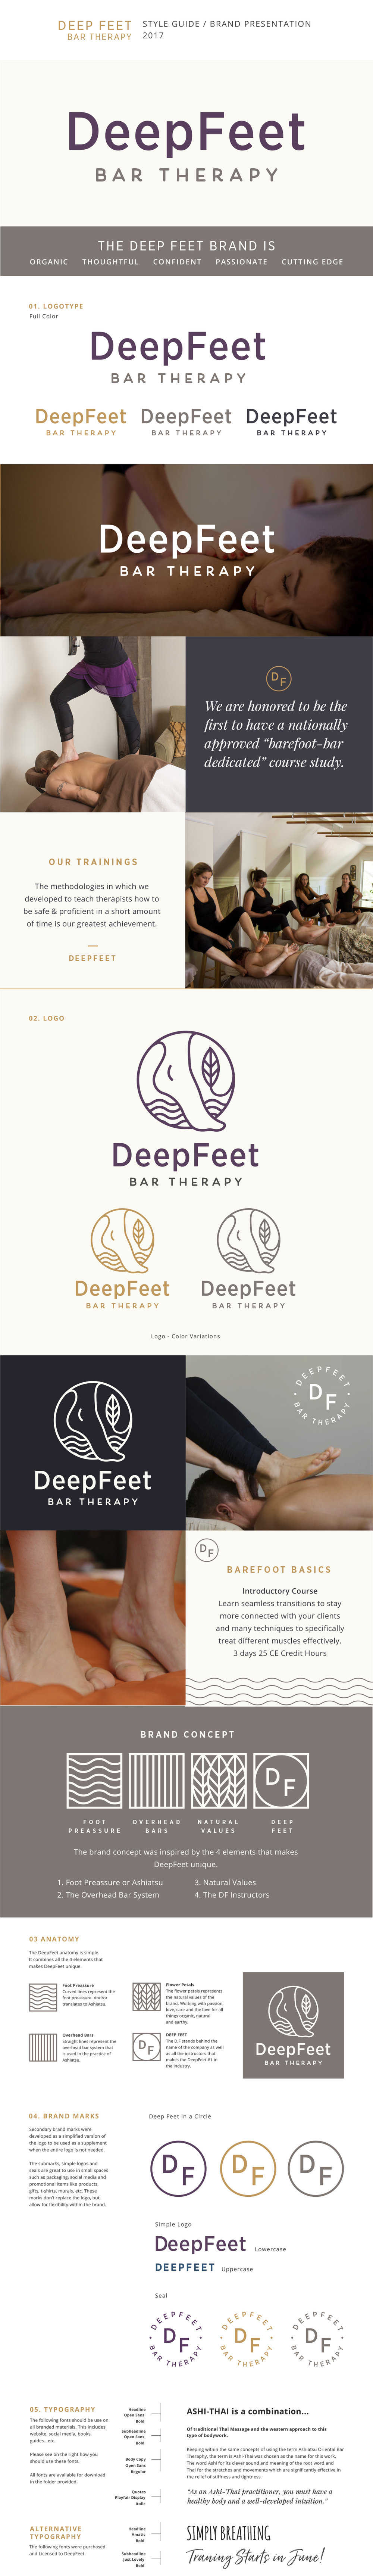 Leo-Gomez-Studio-Deep-Feet-Branding-Final-01